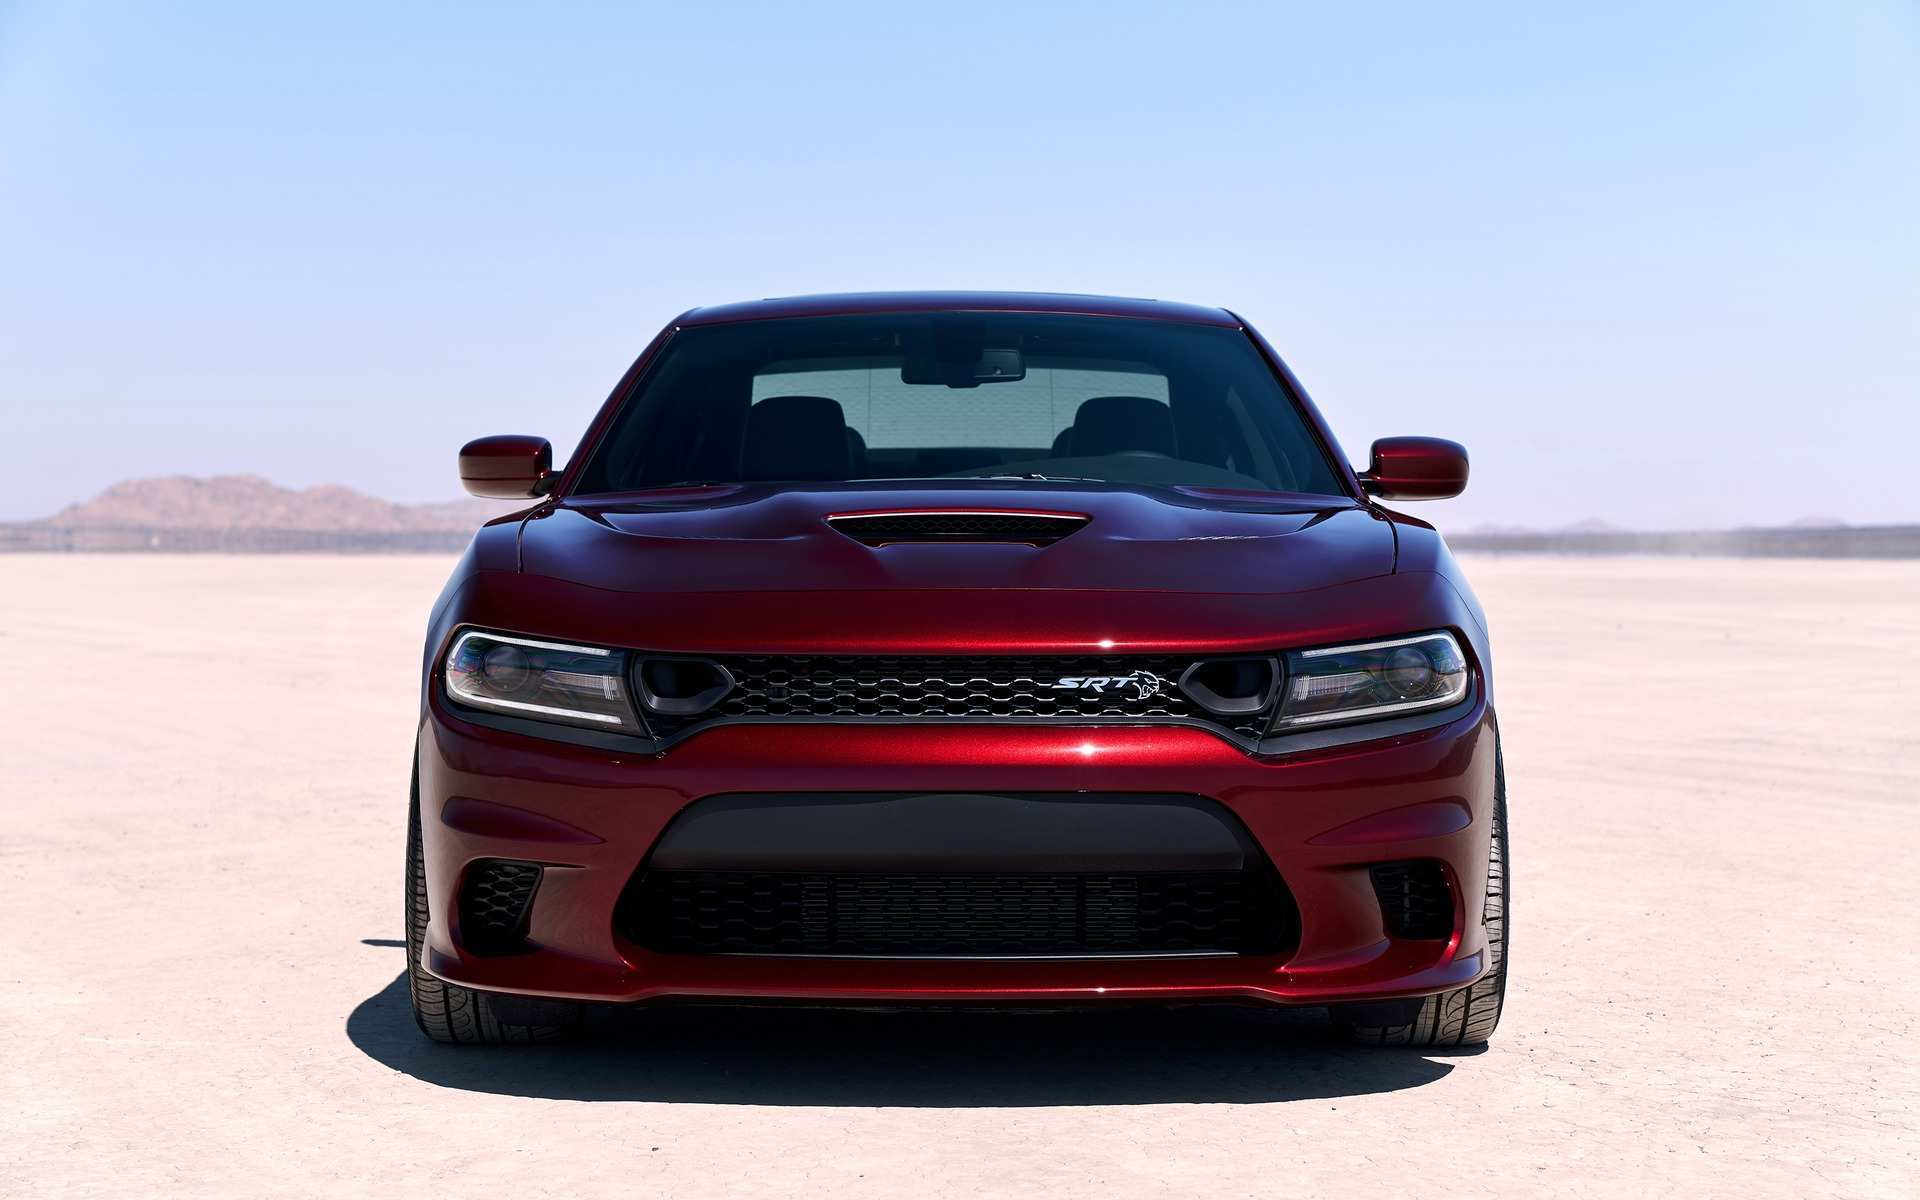 21 Great 2020 Dodge Charger Update Rumors by 2020 Dodge Charger Update